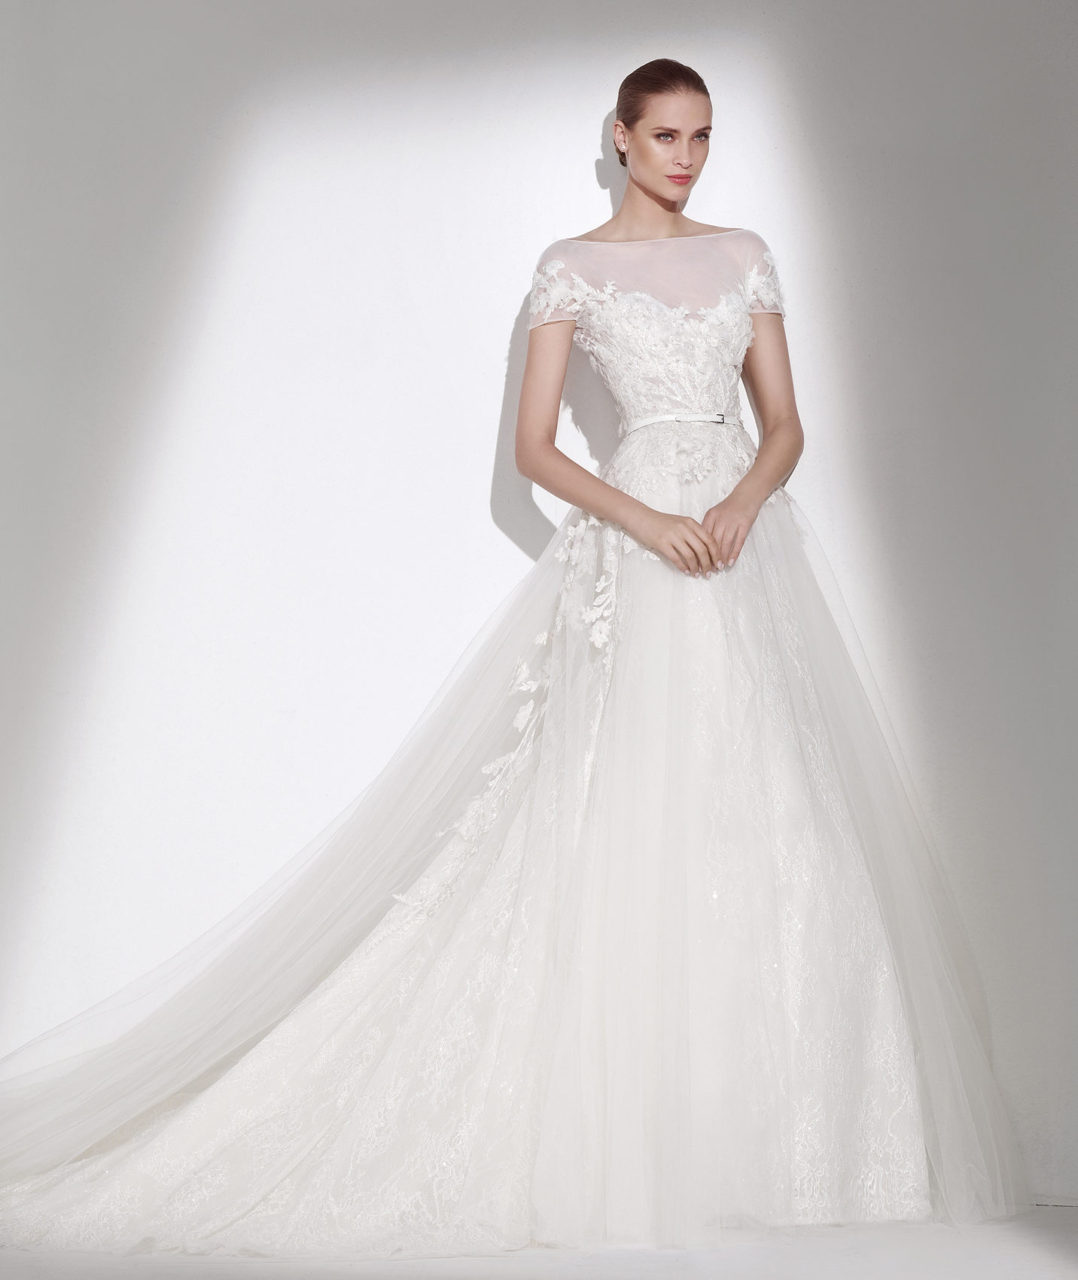 2015 Designer Wedding Gowns: 50 Most Incredible Designer Wedding Dresses From 2015